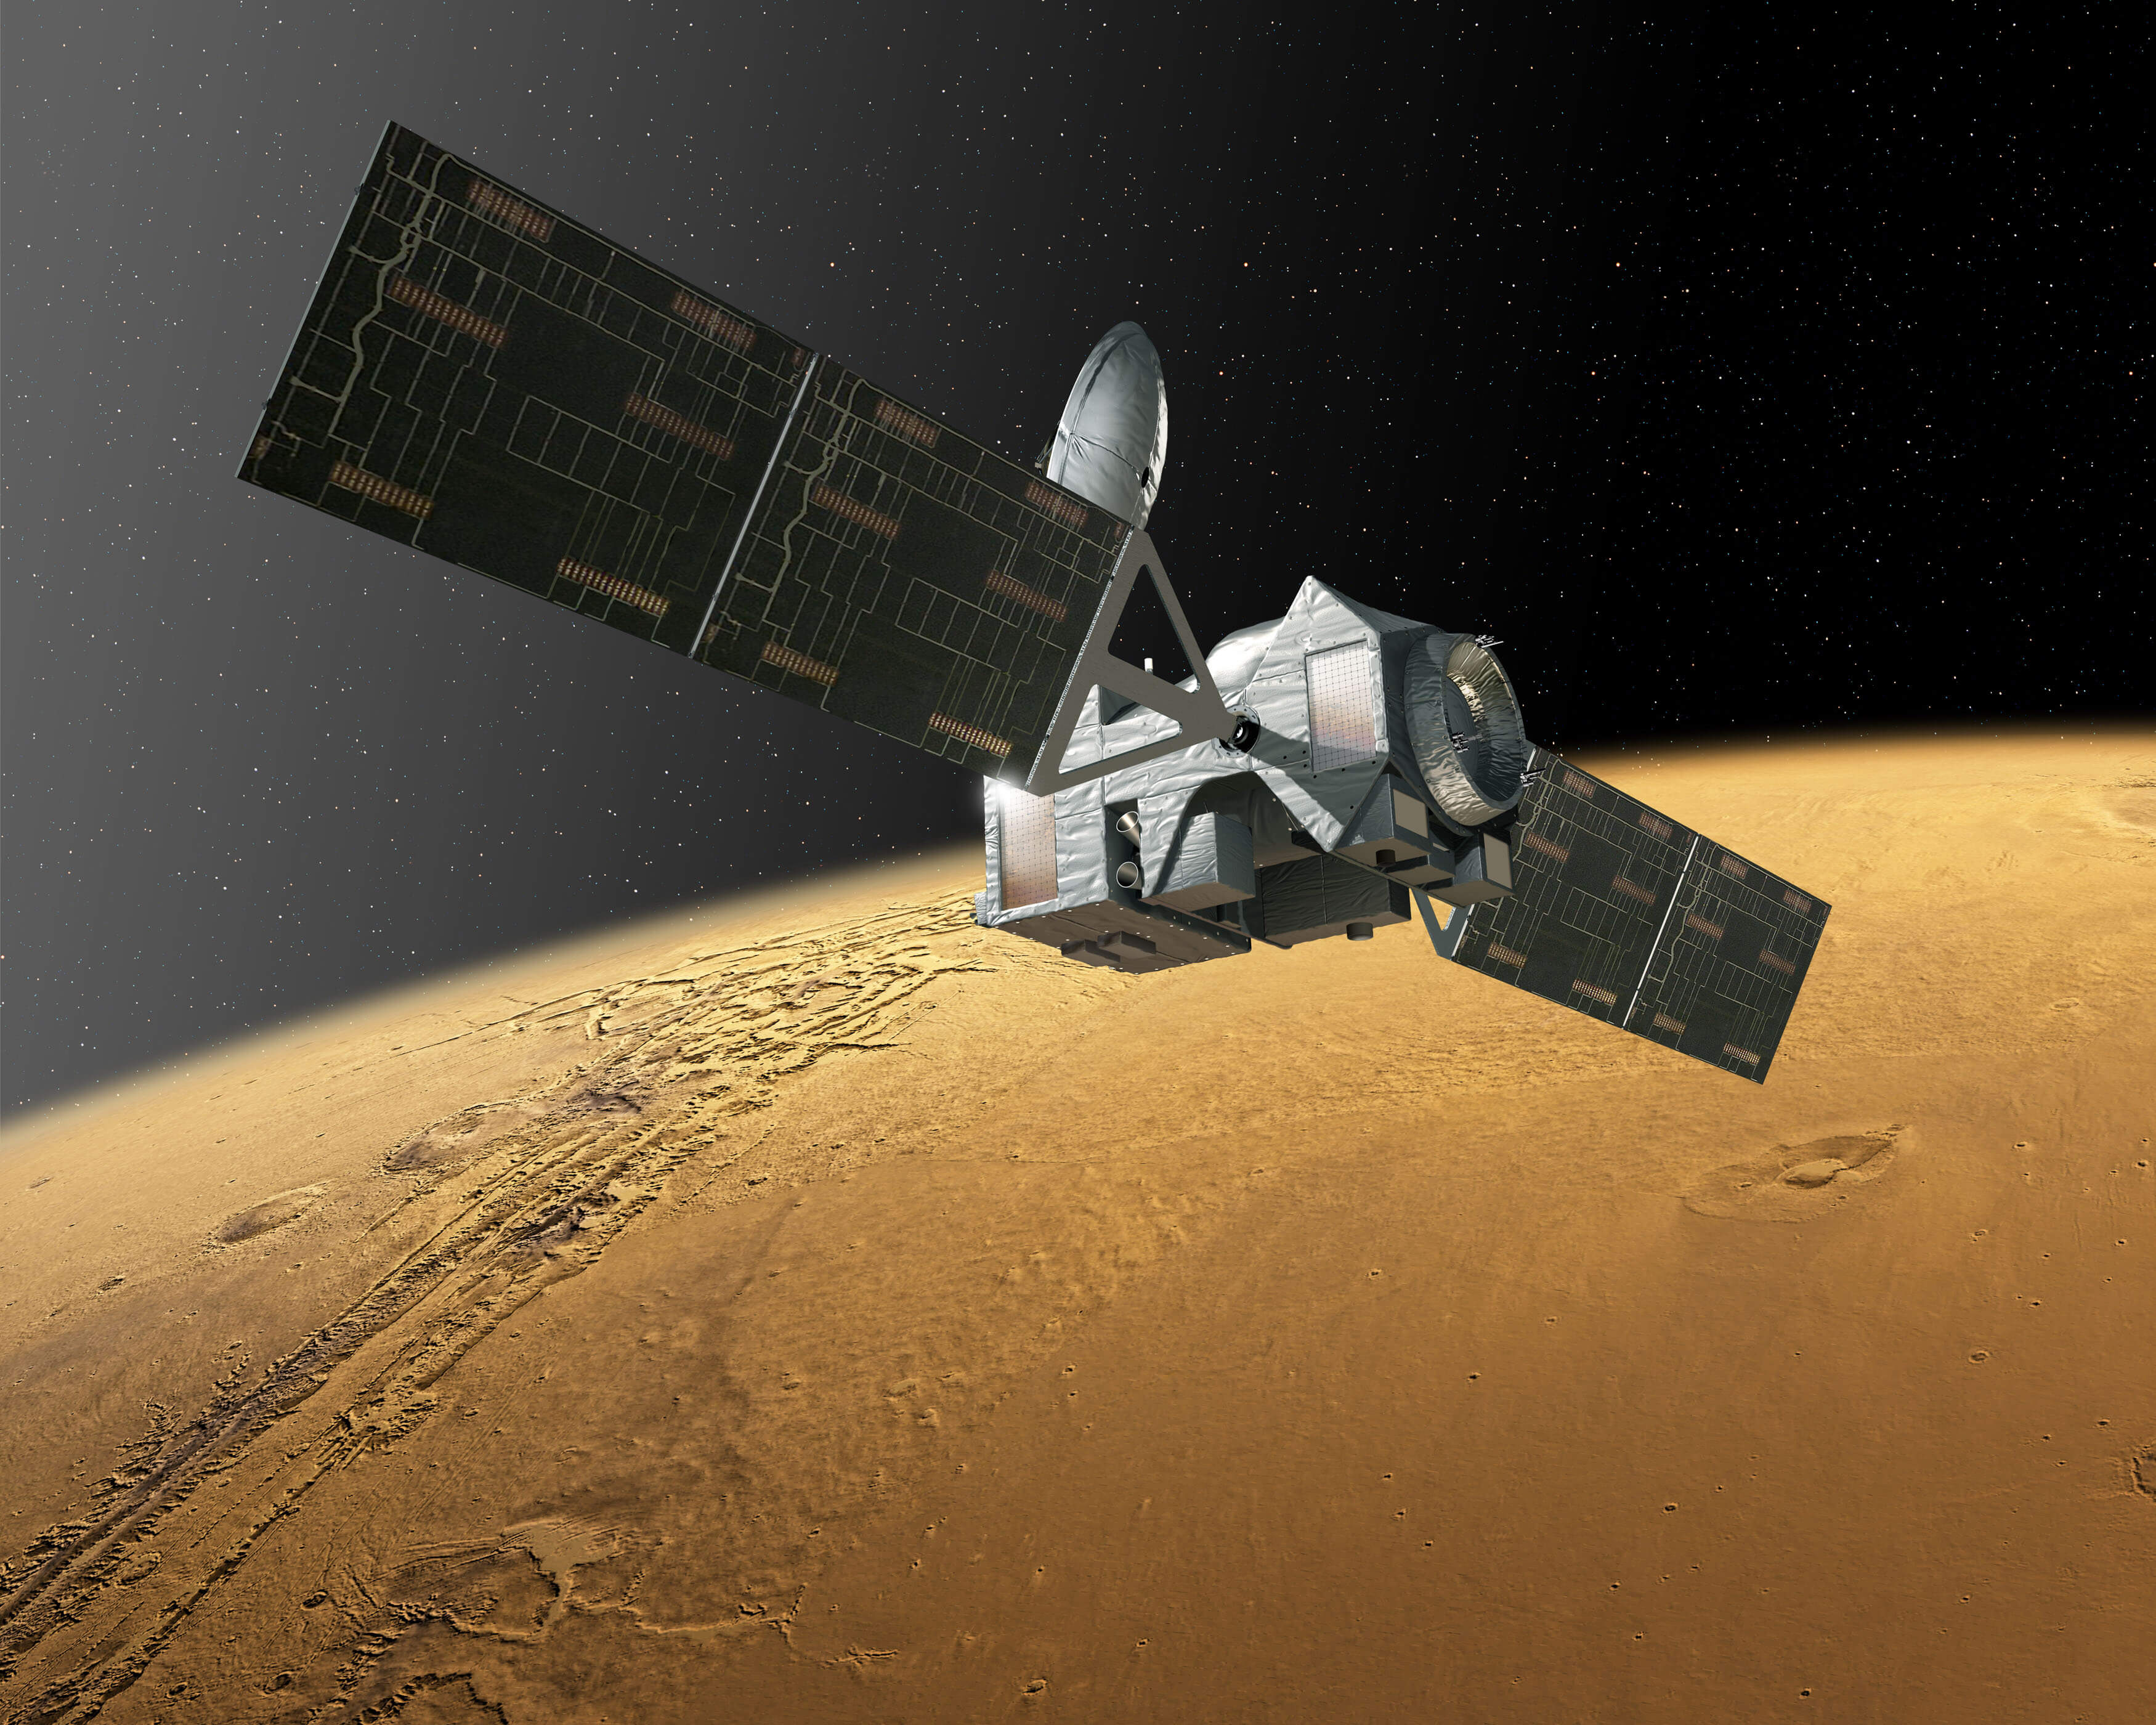 European-Russian mission to Mars postponed. Blame the coronavirus?